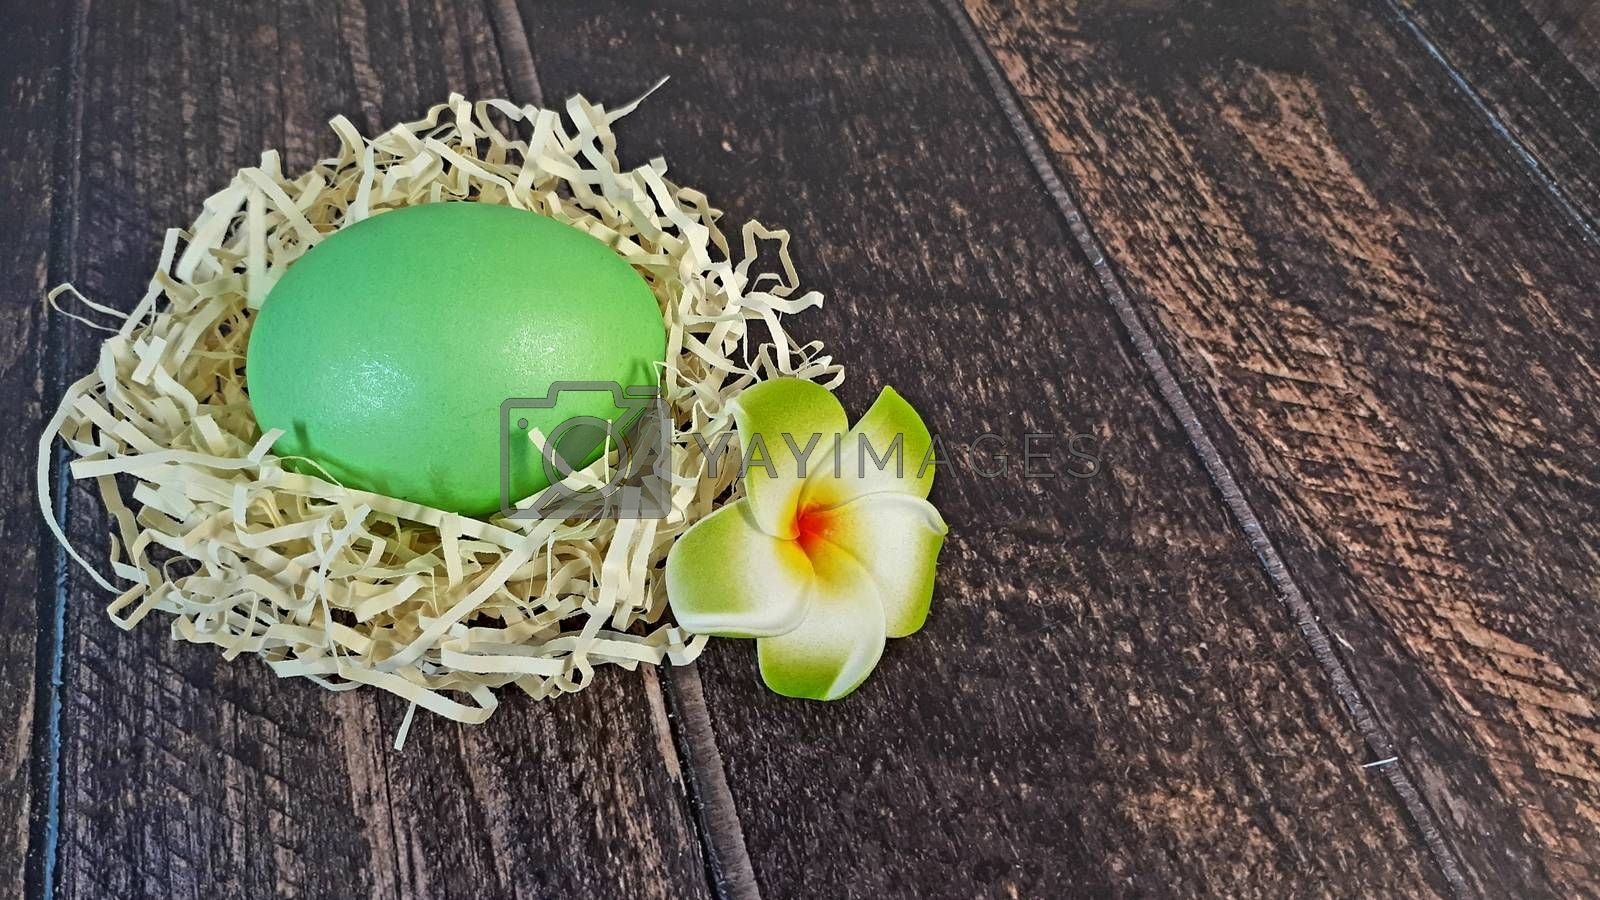 Easter egg in a nest of straw and a bud on a wooden table. Close-up.